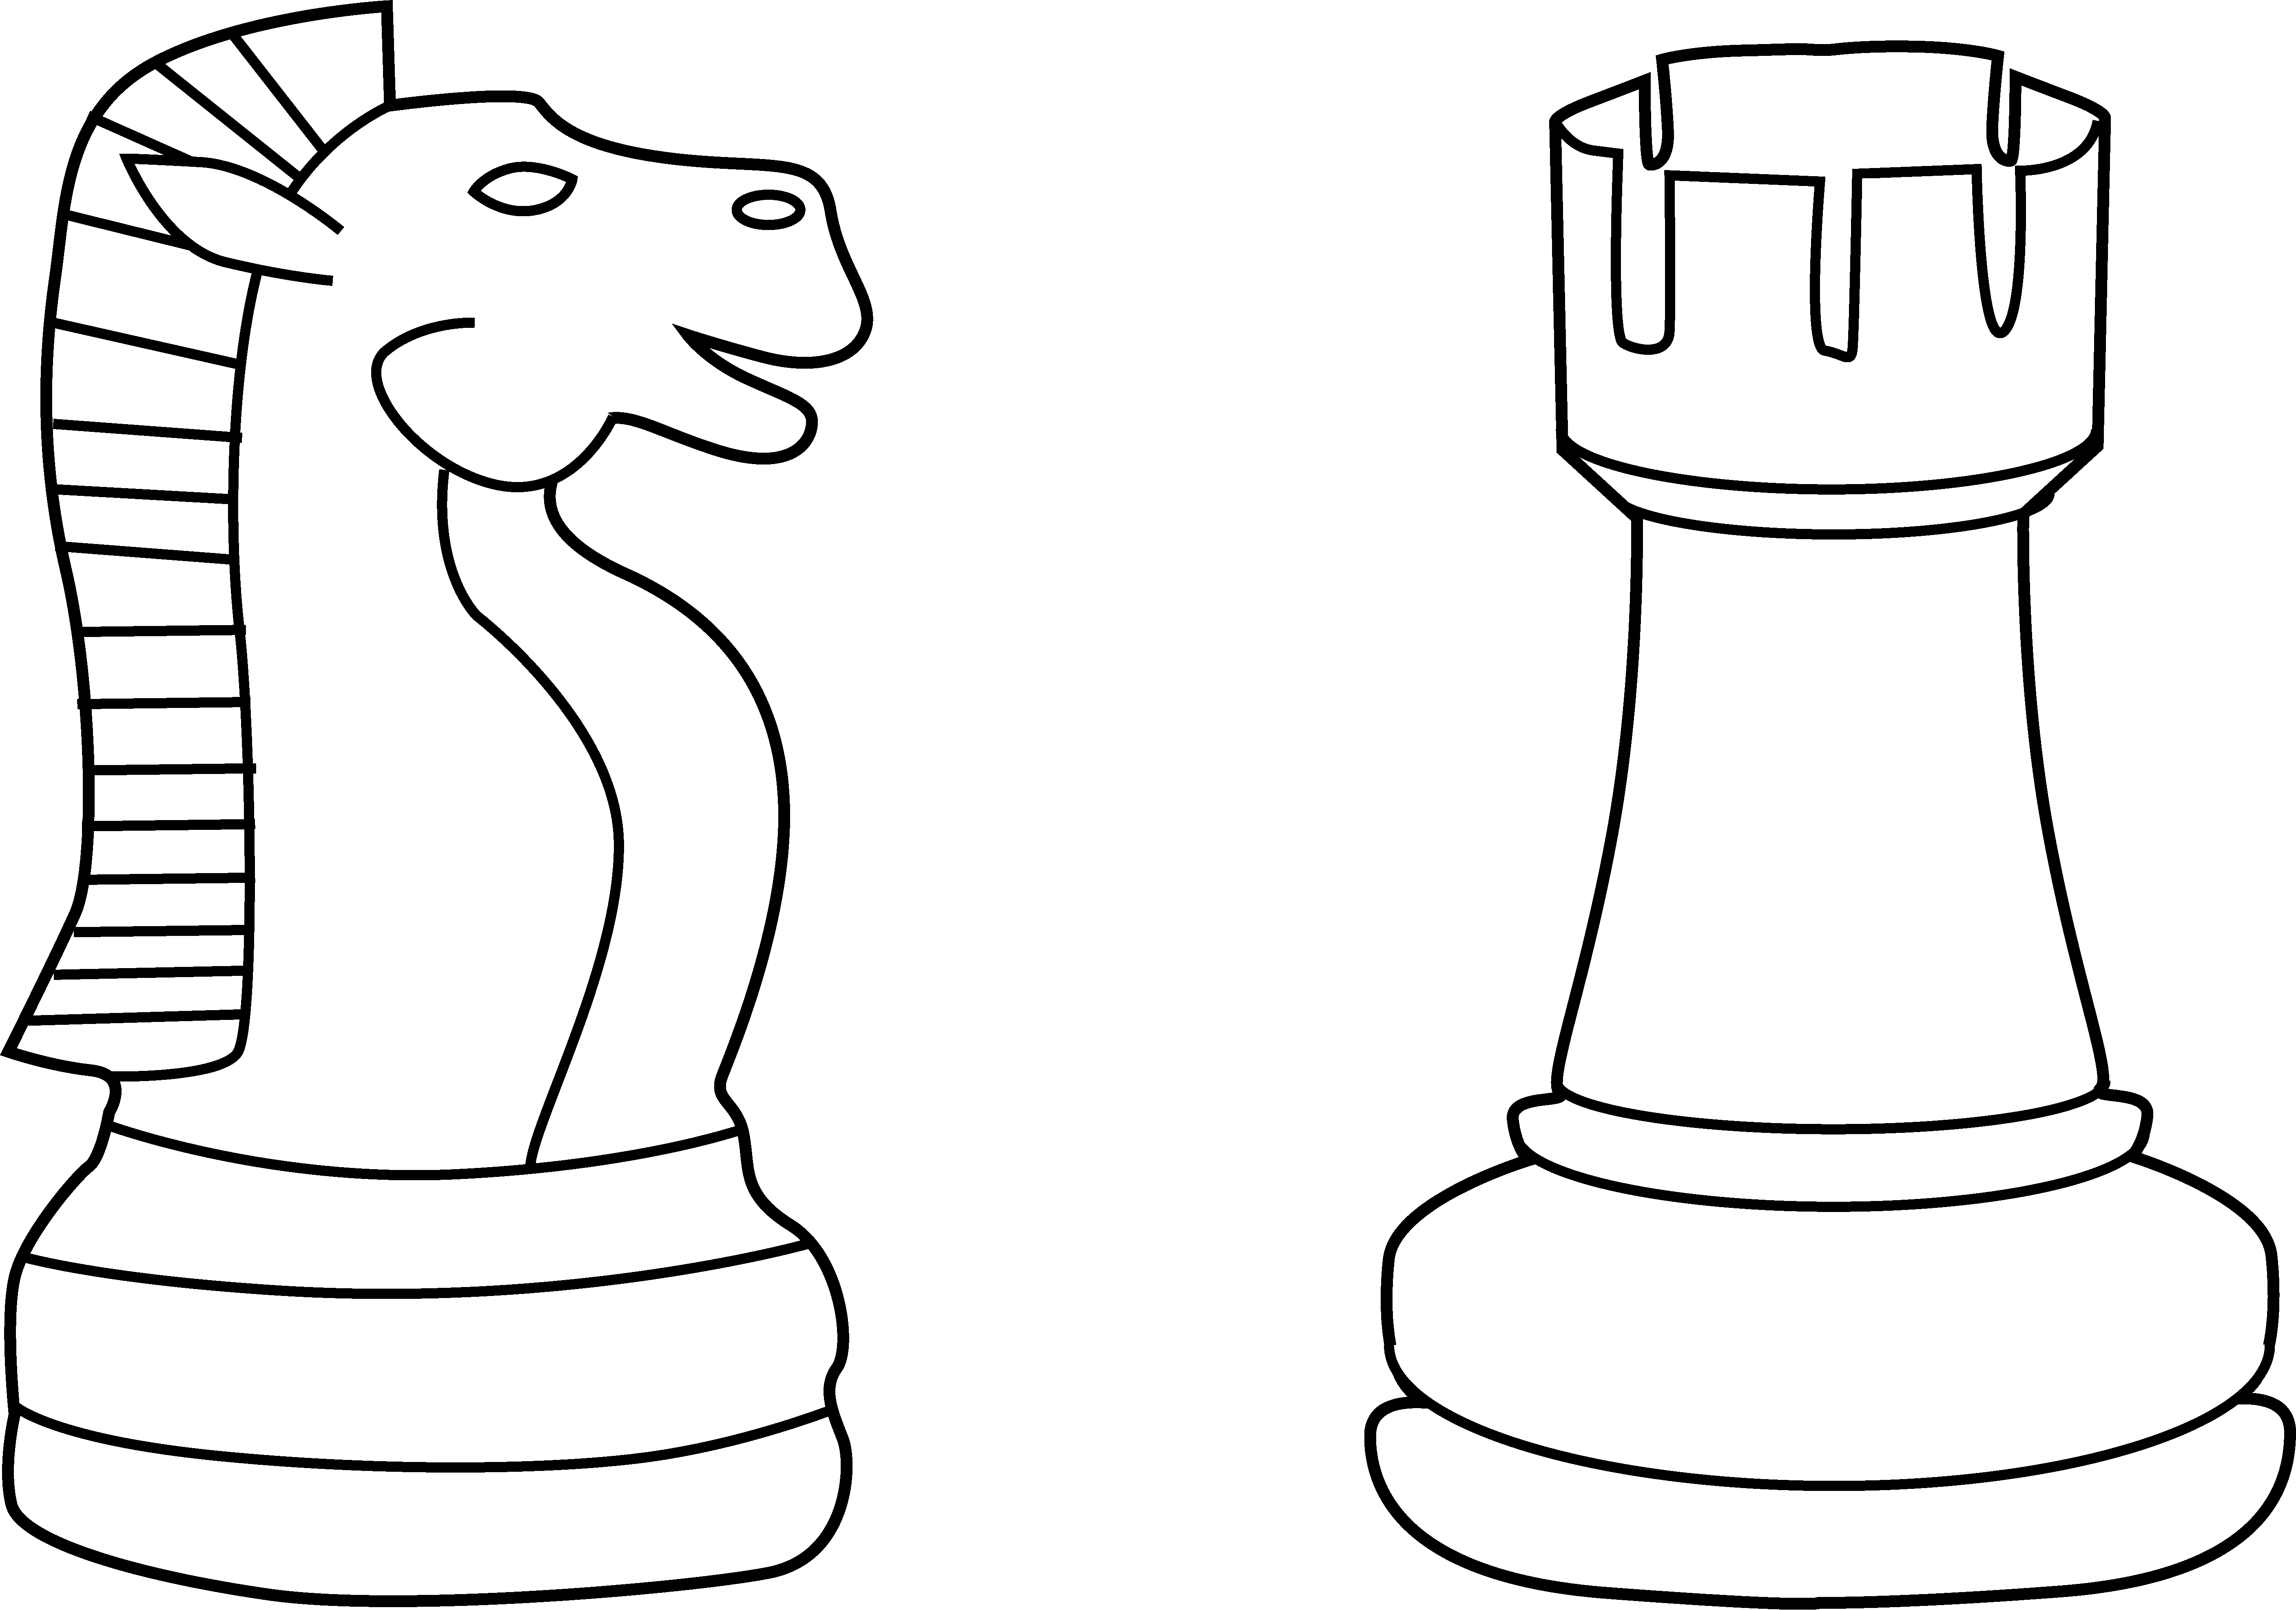 Drawing chess rook. Free pics of pieces